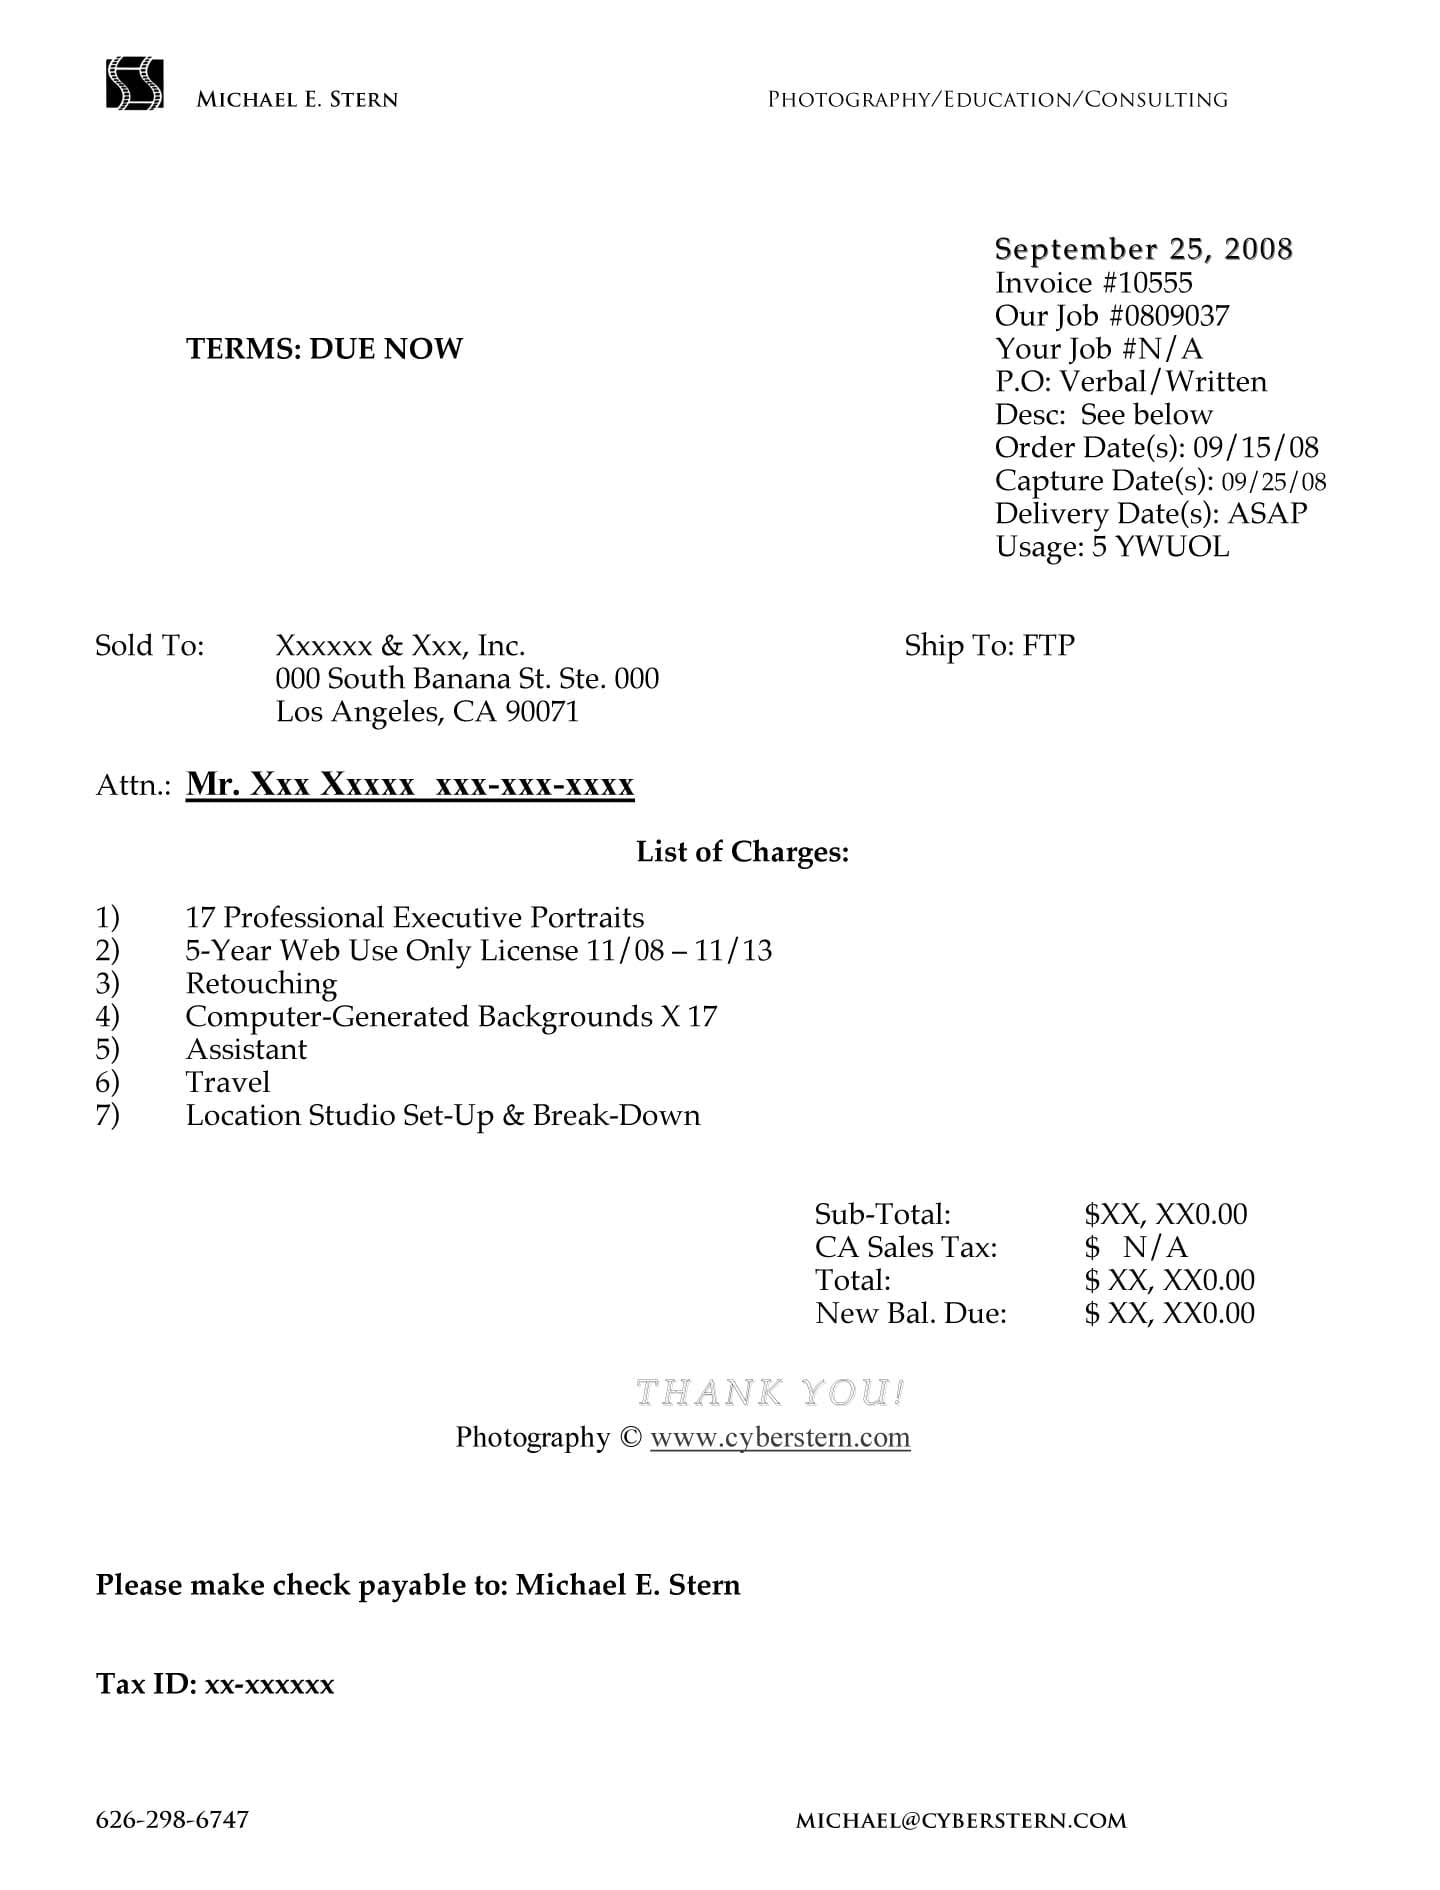 Free Photography Invoice Template Download